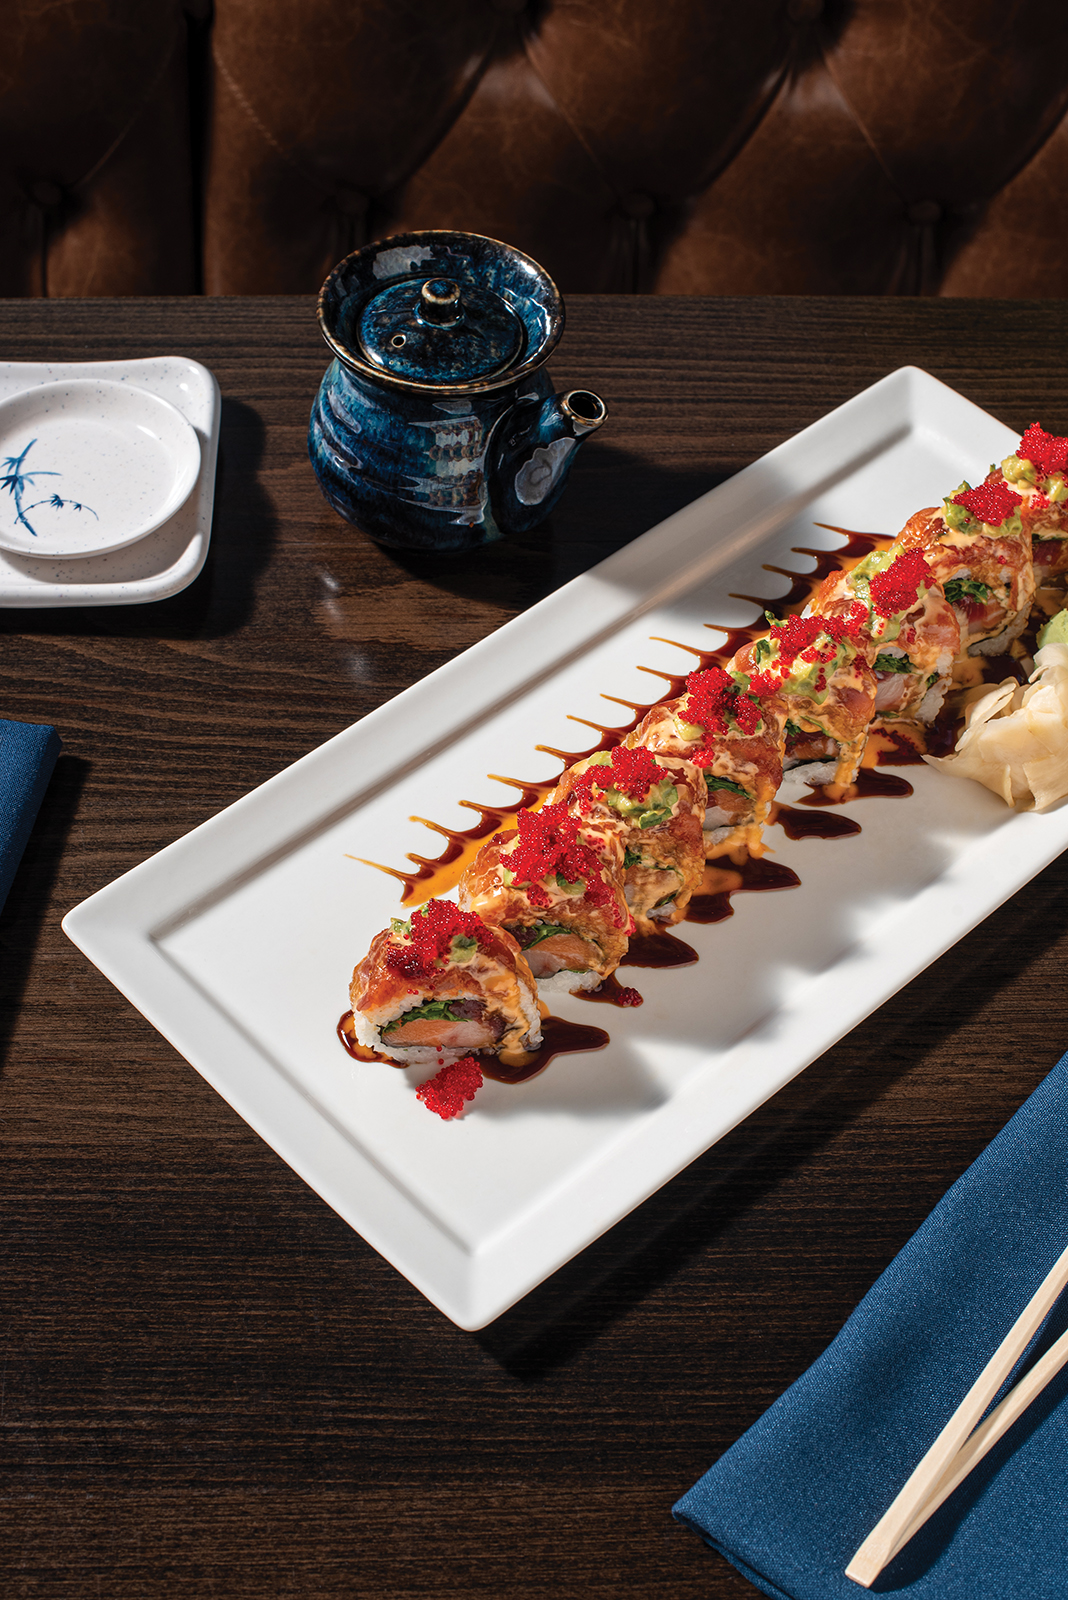 TITANIC ROLL: Yellowfin tuna, salmon, yellowtail, and cilantro wrapped with spicy tuna—topped with avocado salad, red tobiko, spicy mayo, and eel sauce